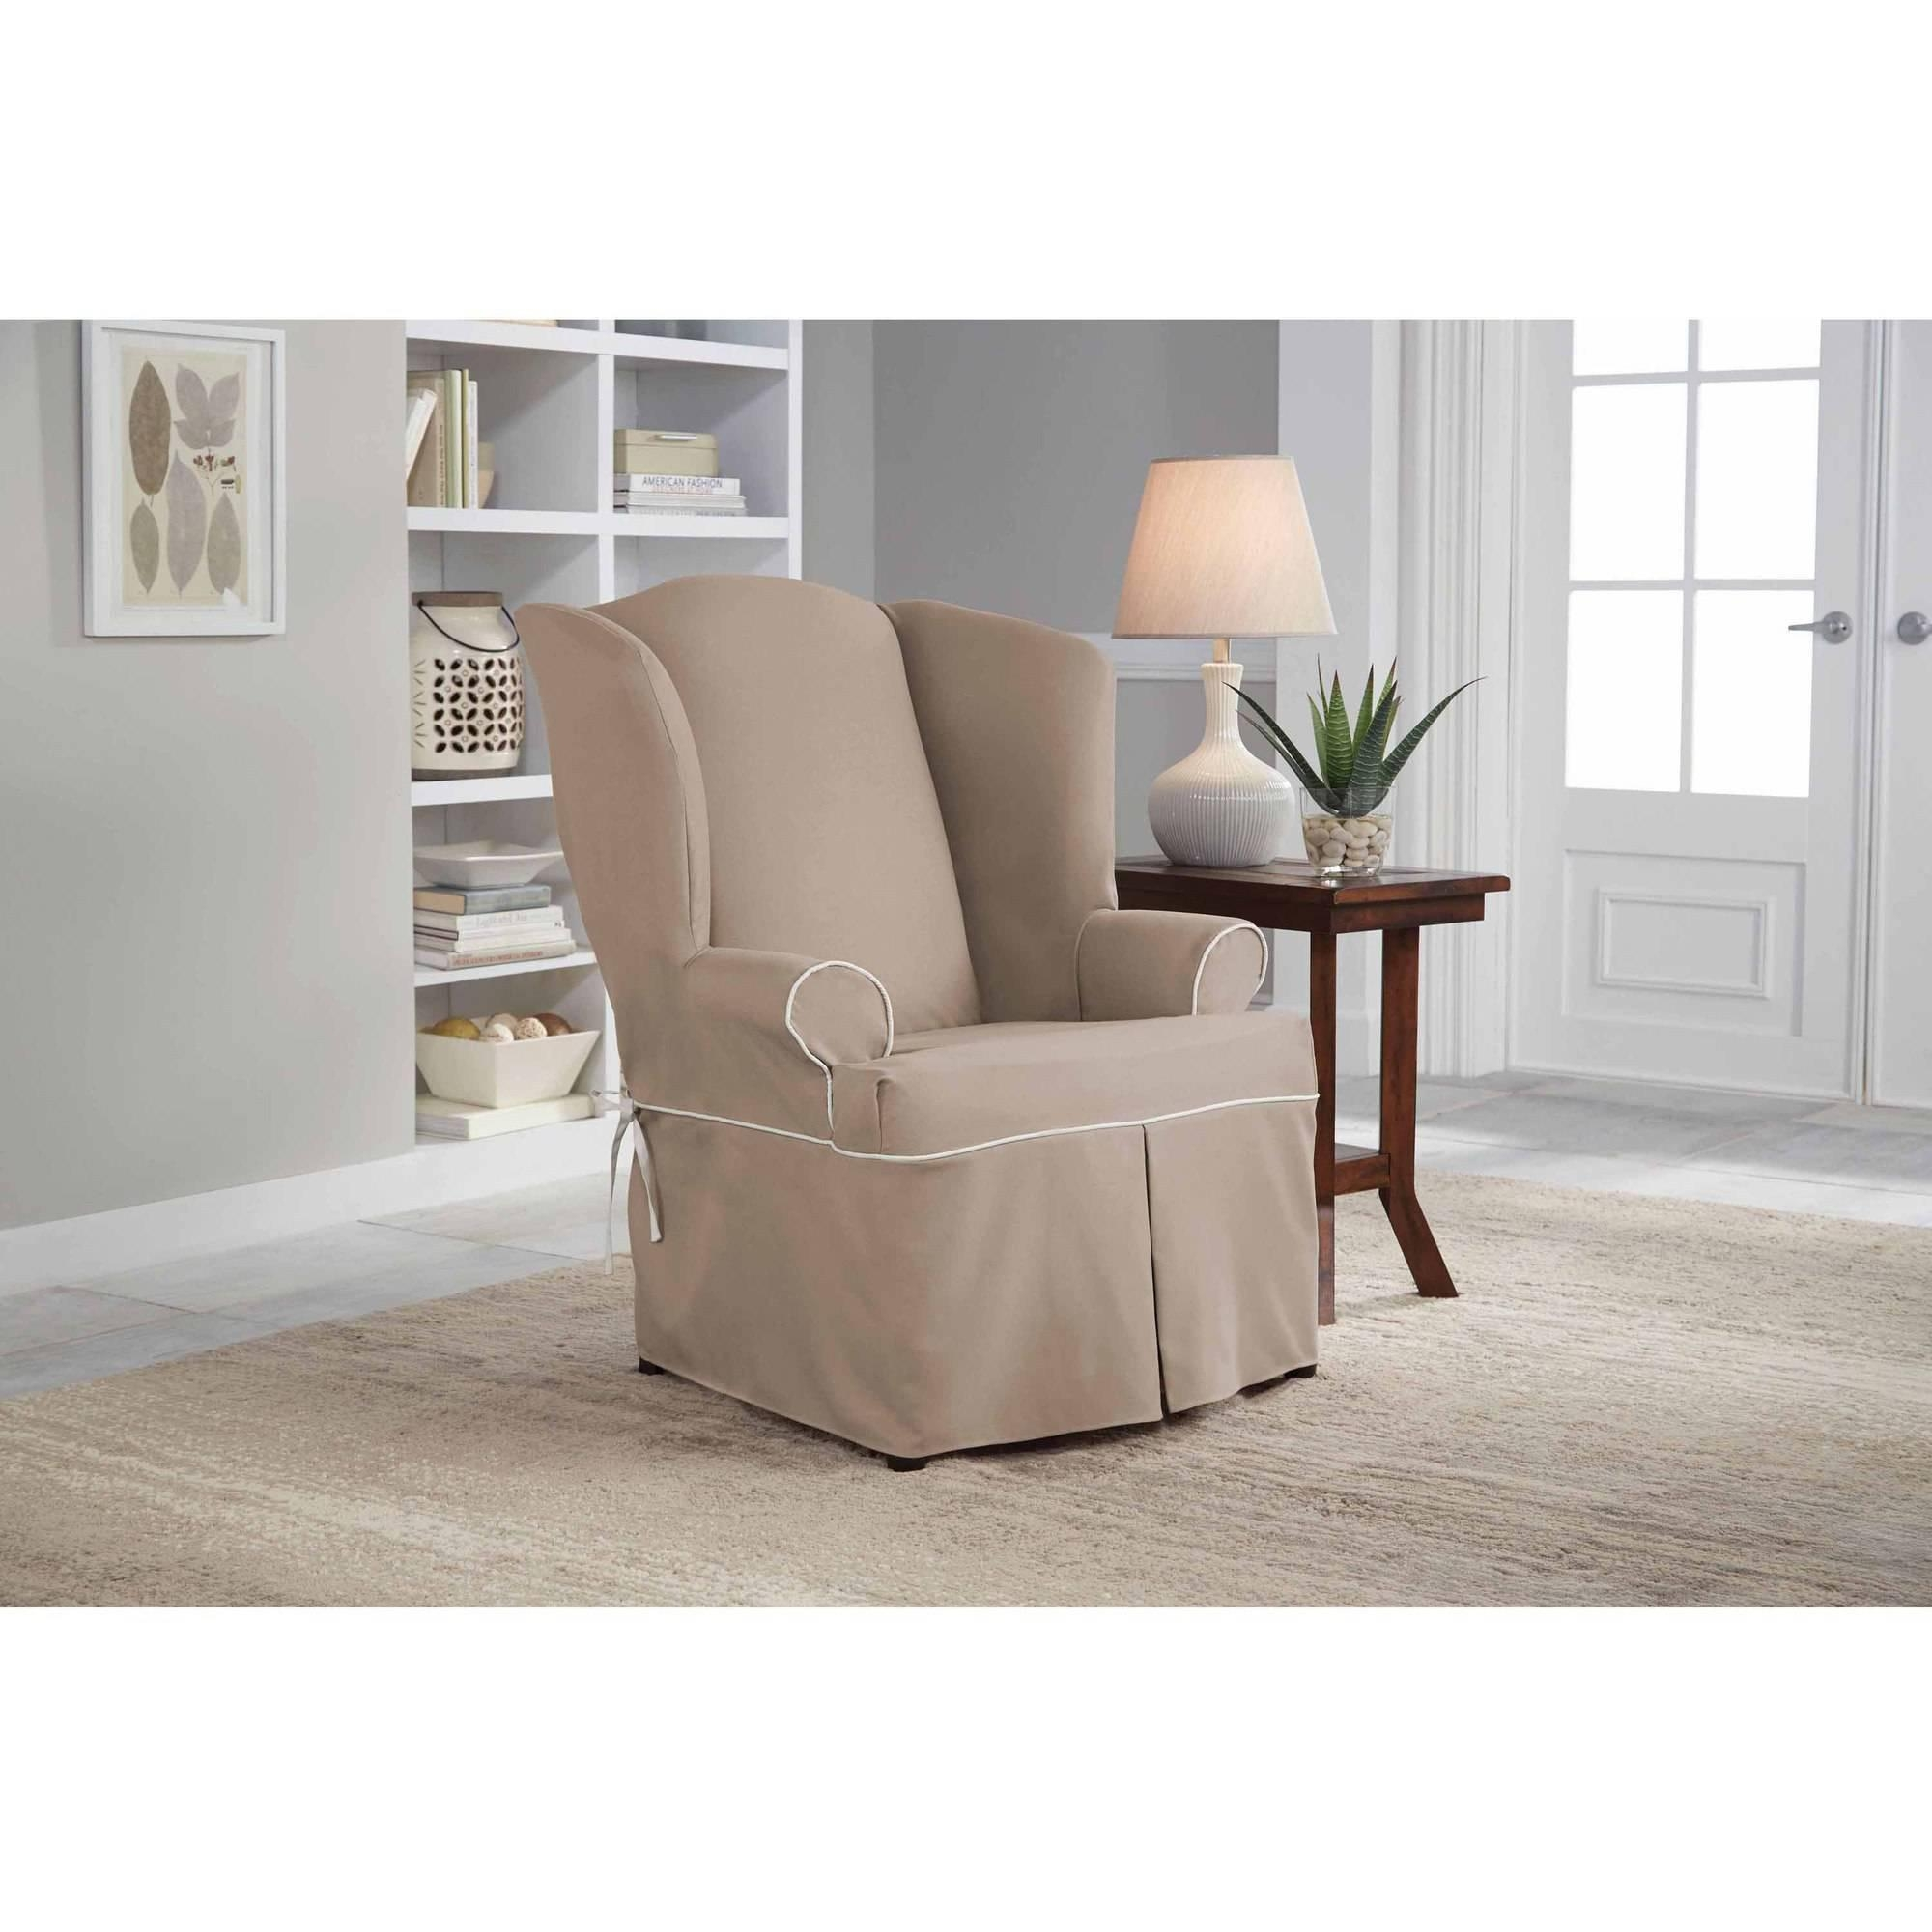 Slipcover Furniture Living Room: 20 Top Loveseat Slipcovers T-Cushion